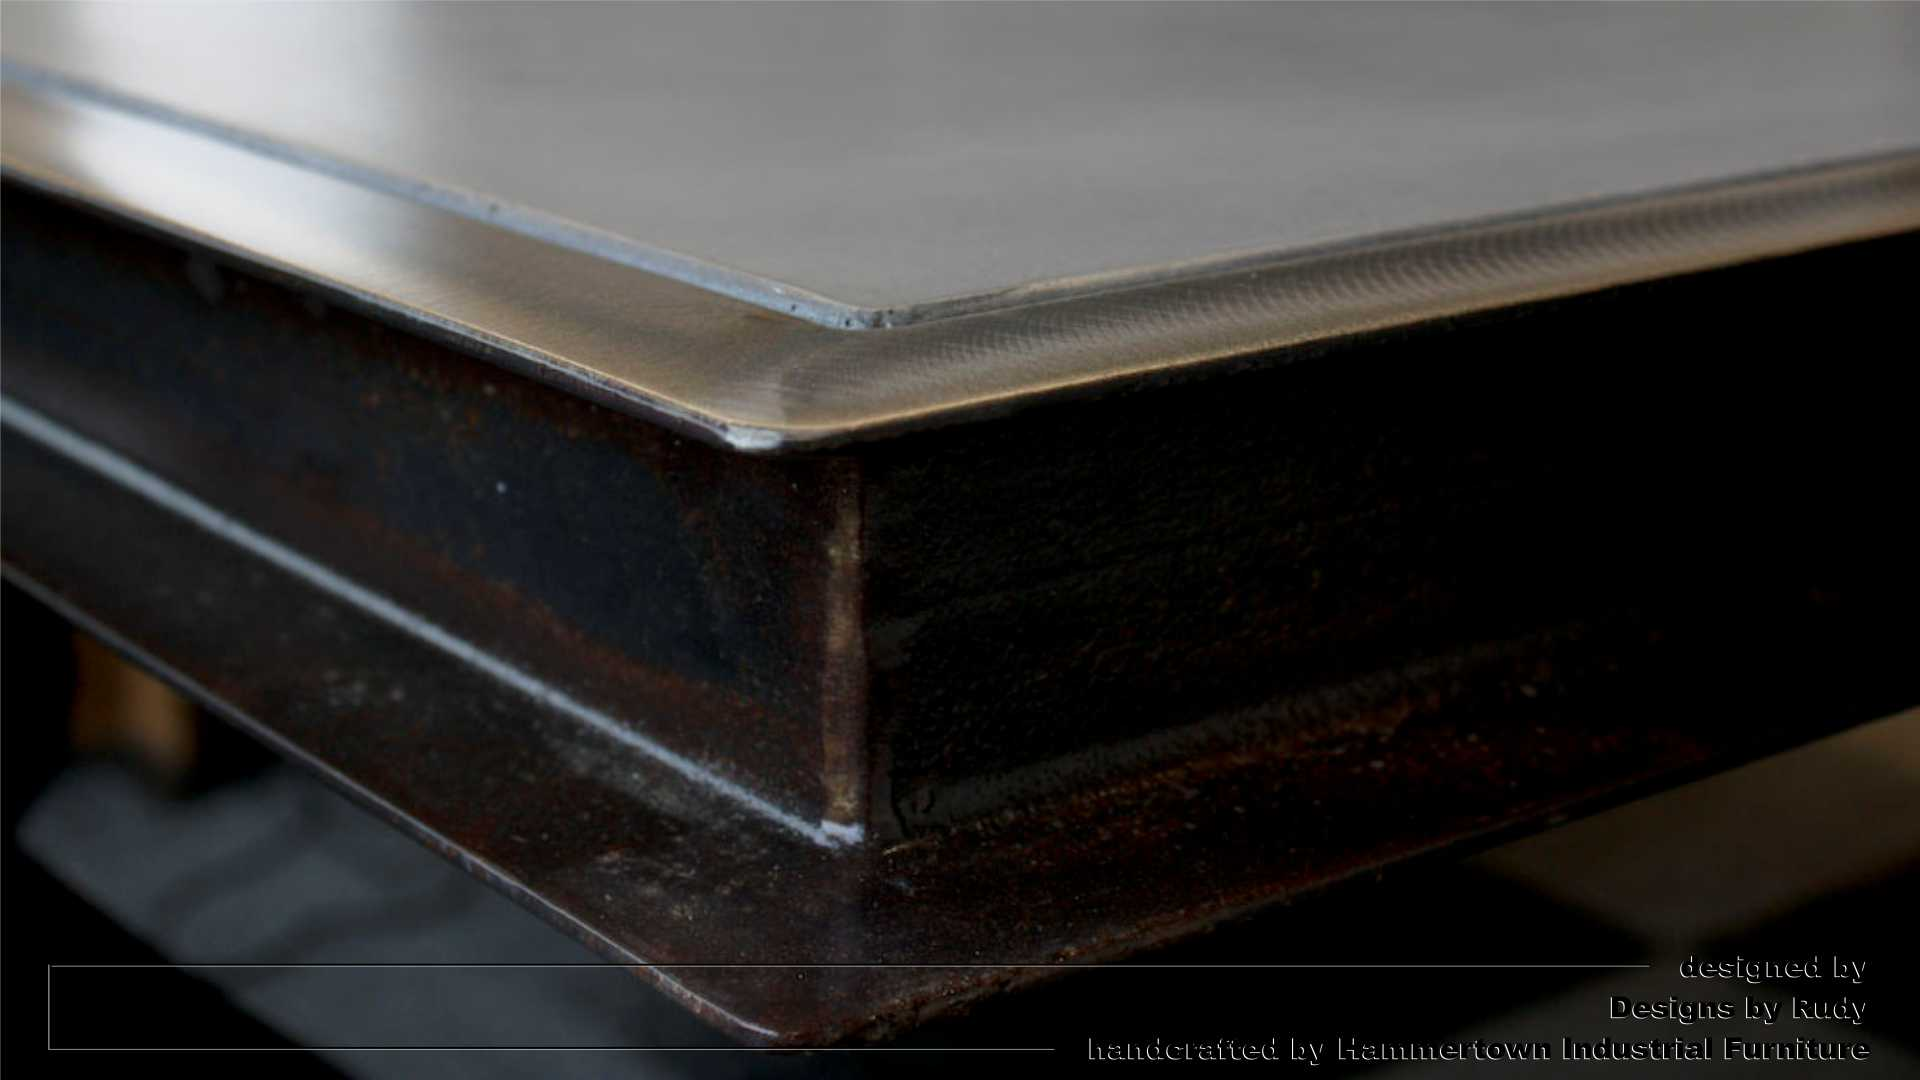 Concrete top and steel frame conference room table designed by Desings by Rudy steel corner detail 2